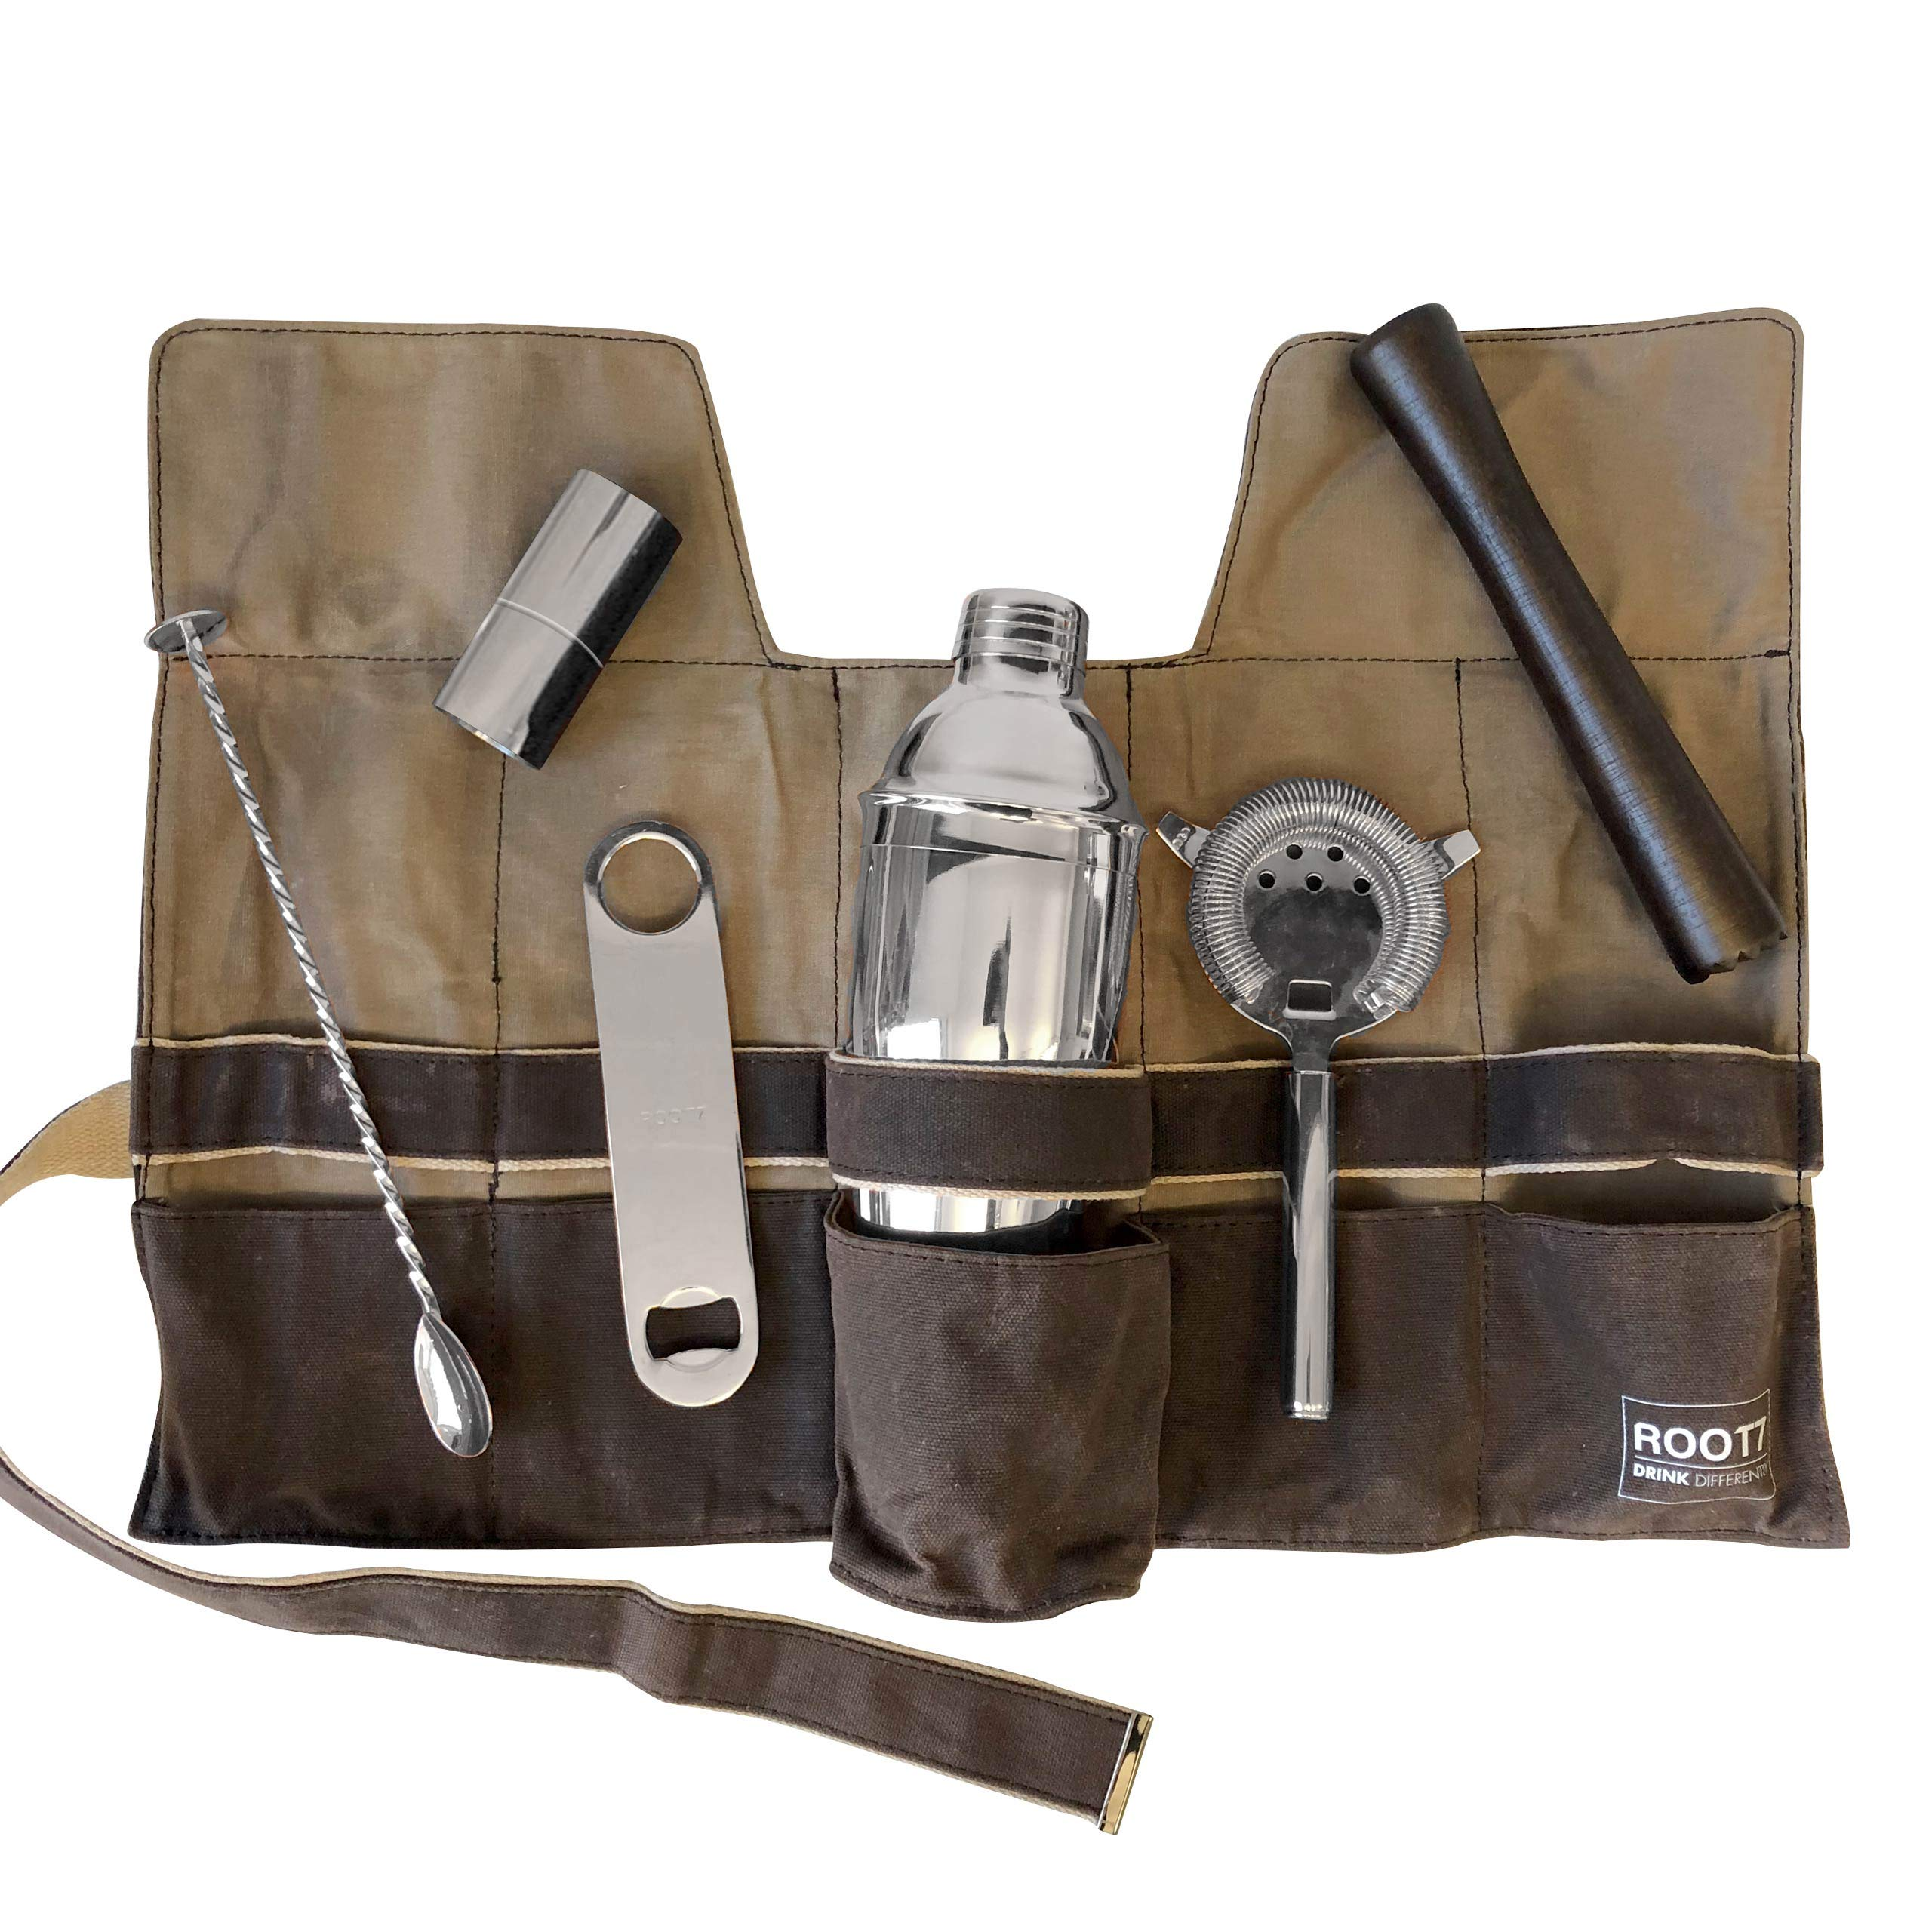 Premium Modern Silver Coated Professional Bartender Kit, Home and Workplace Cocktail Set, 19oz Shaker, Bar Blade, Jigger, Wood Muddler, Strainer, Spoon and Wax Canvas Bag by Root7